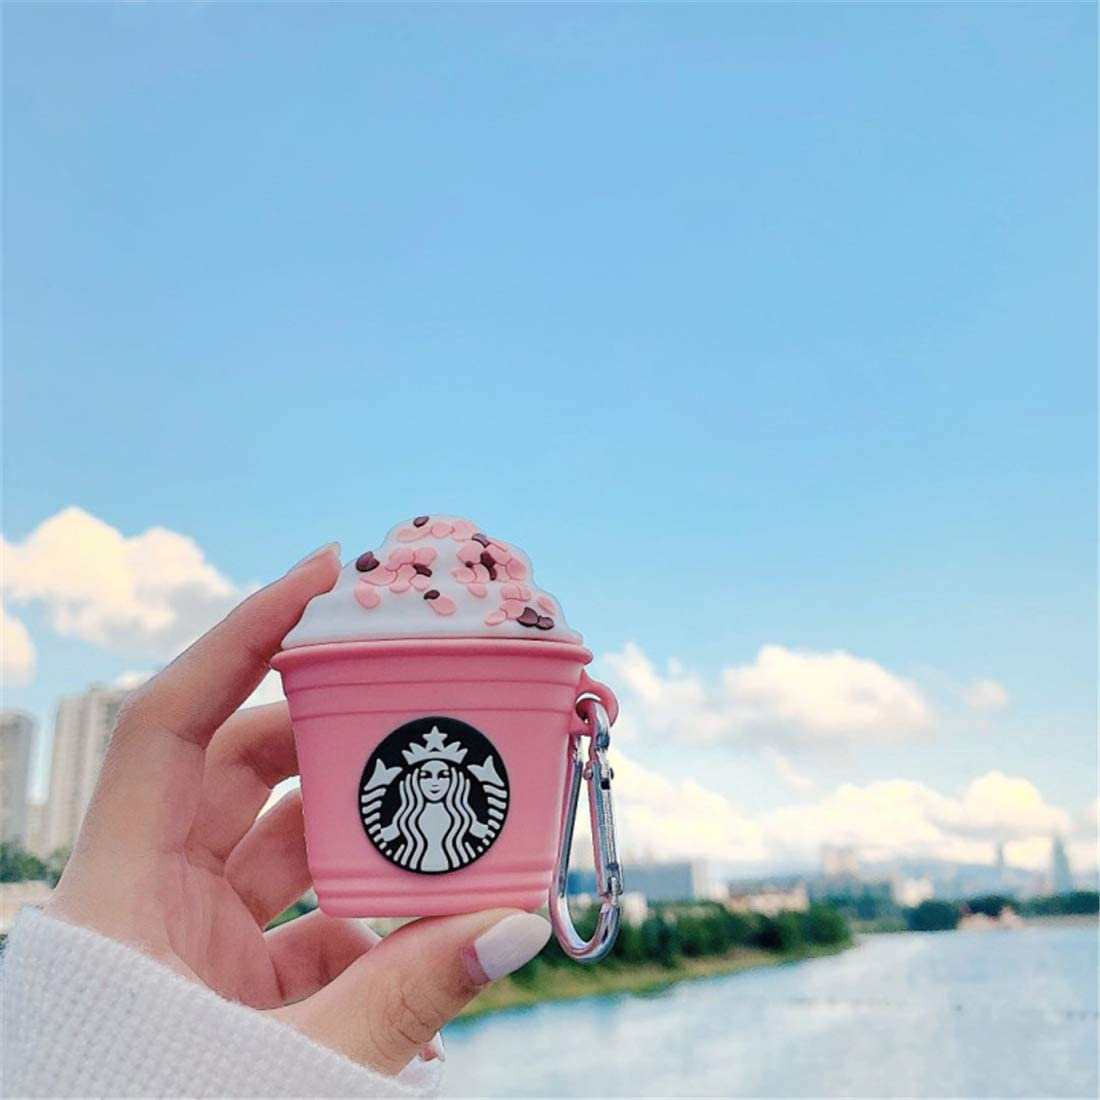 Hiiyorr Pink Coffee Cup Silicone Case for AirPod Cartoon Fun Keychain Soft Skin for AirPods 2//1 Funny Cute Fashion Drink New 3D Character Protective Shockproof Air Pods Cover for Girls Kids Teens